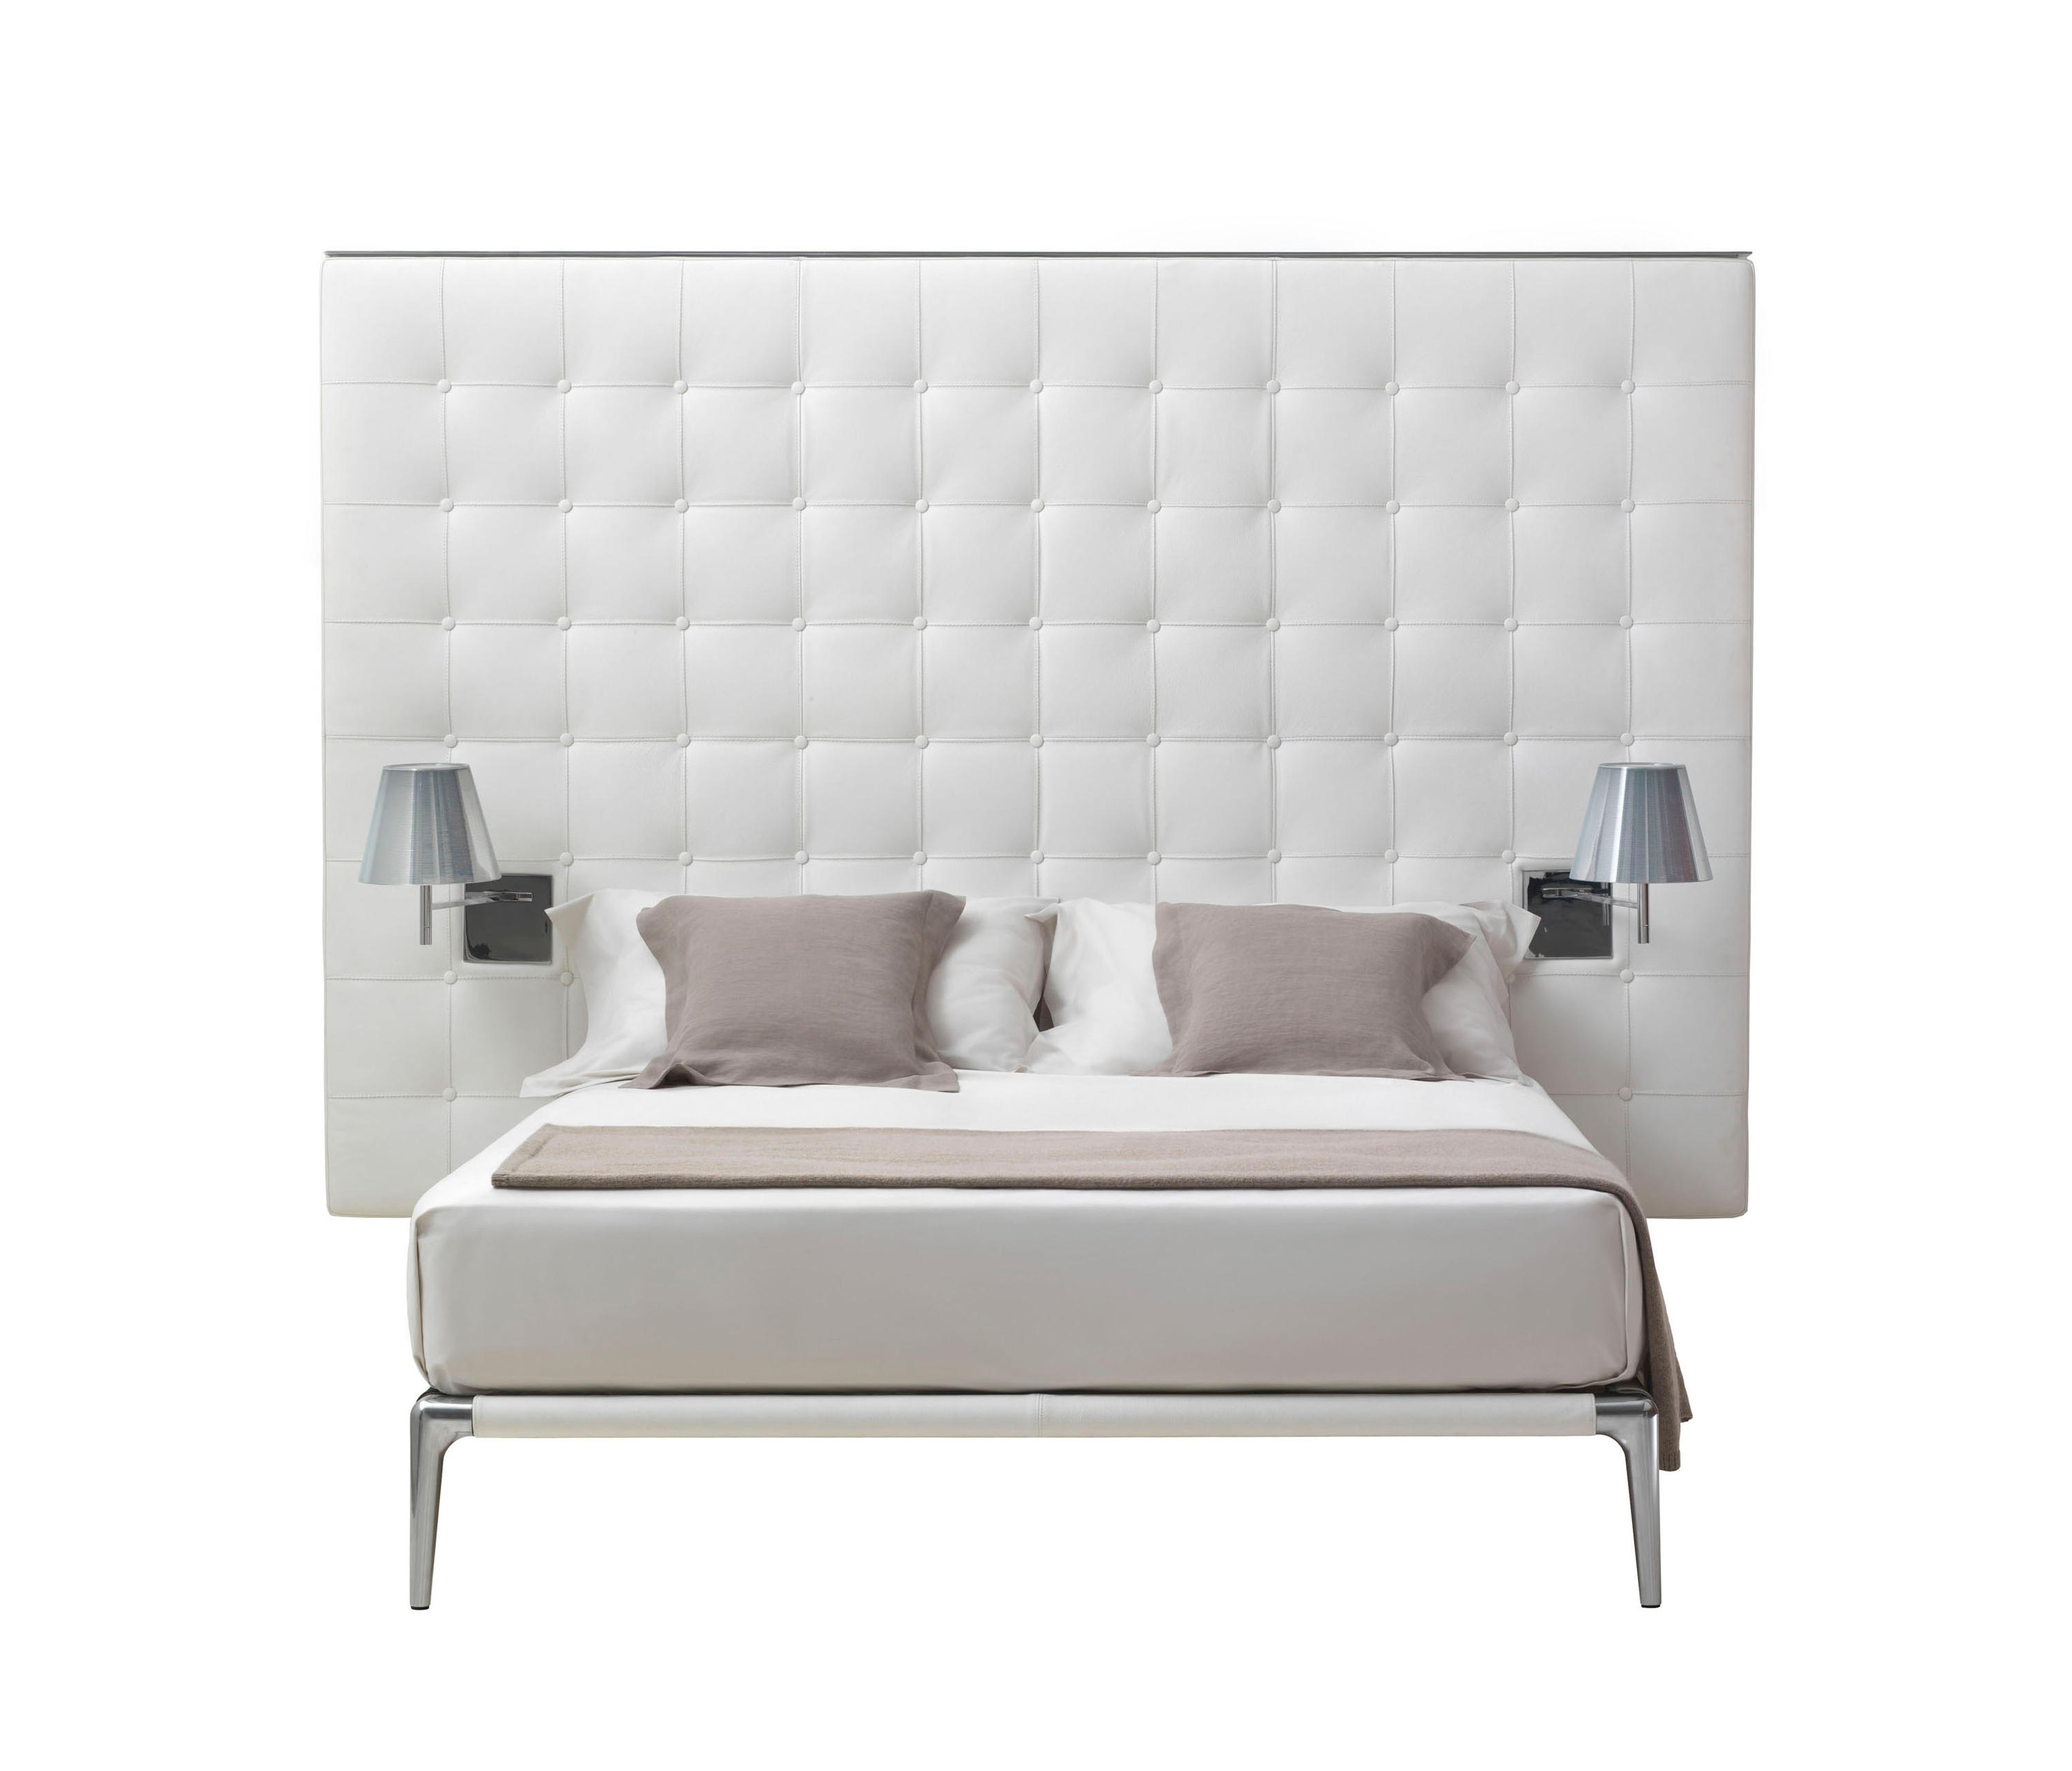 L26 L27 Volage Double Beds From Cassina Architonic